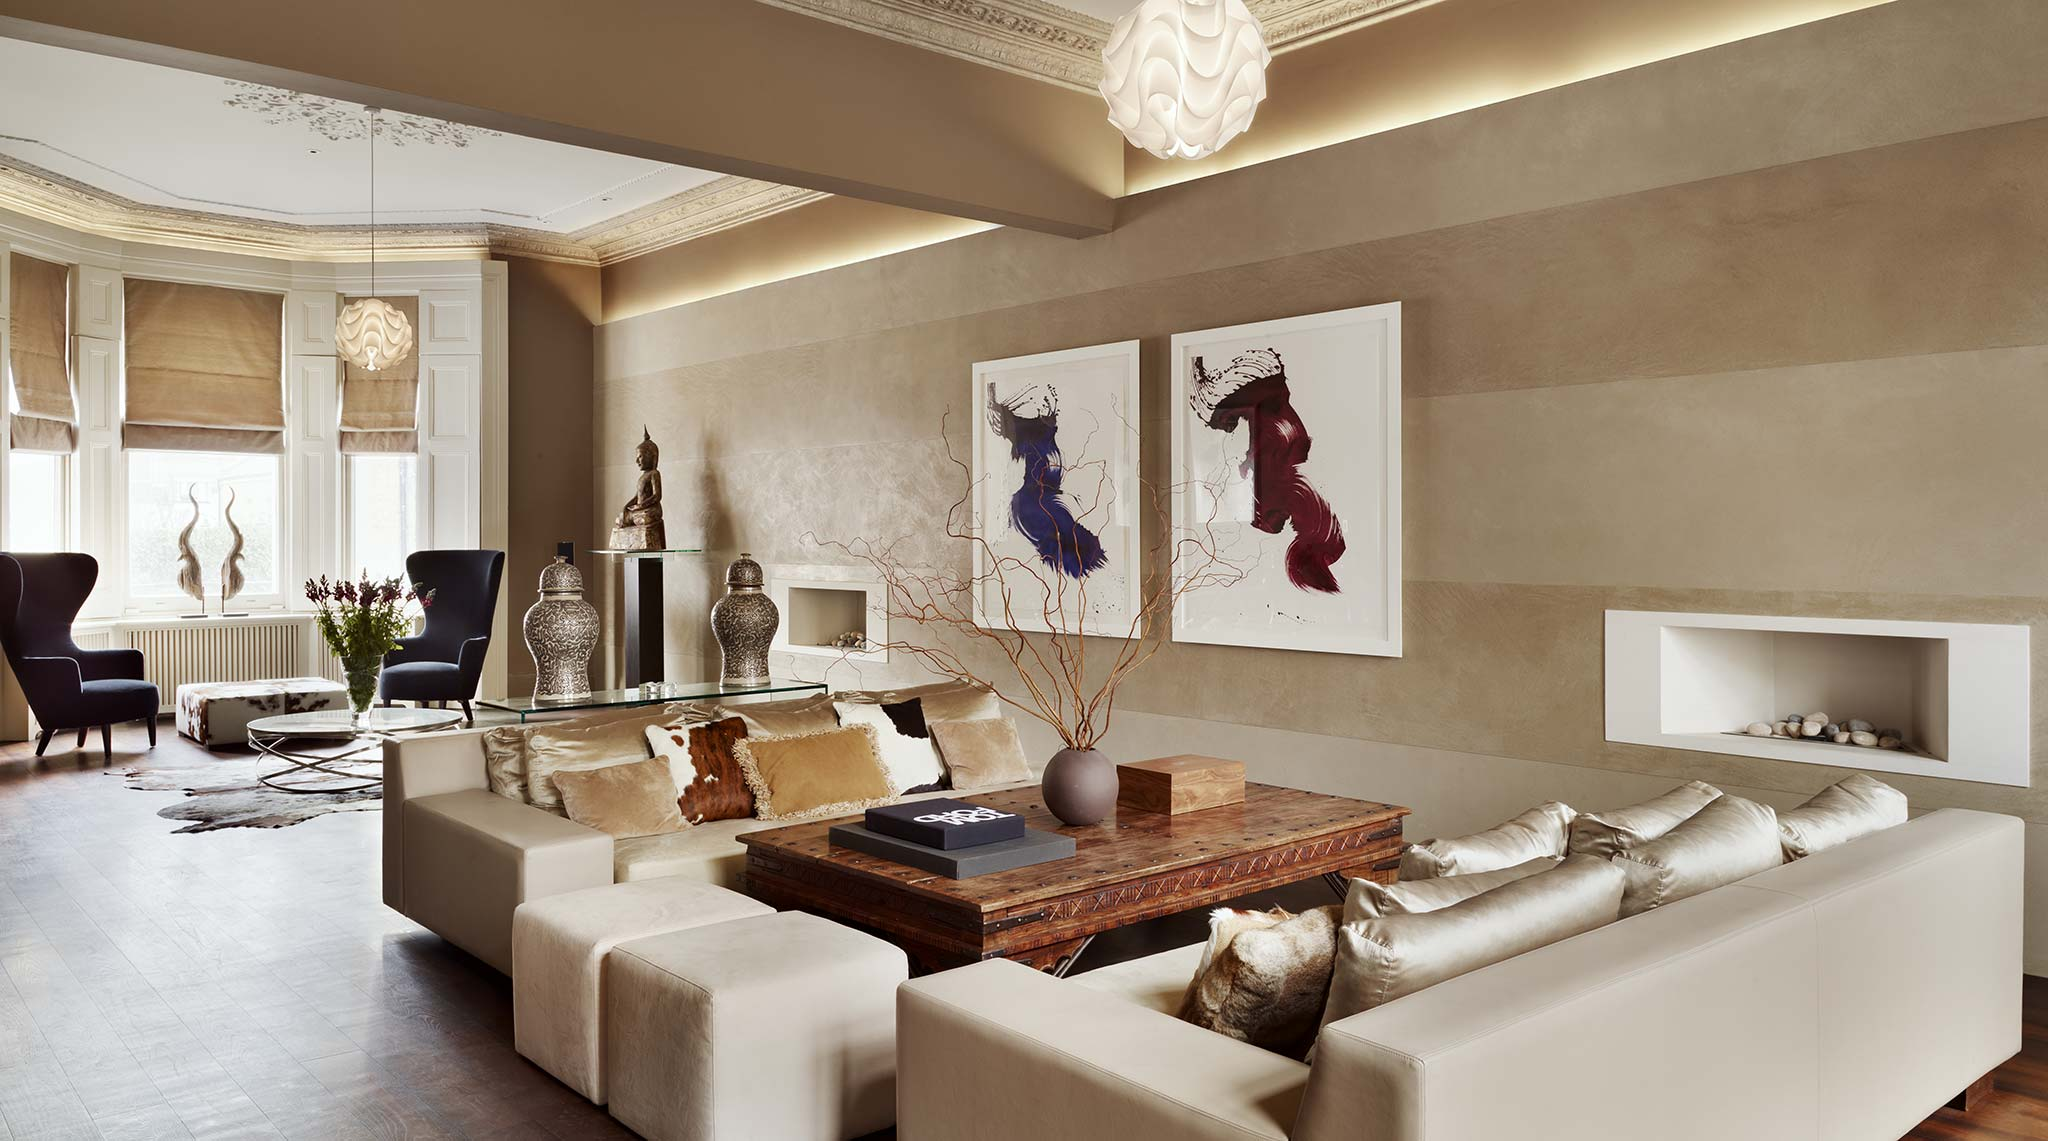 callender howorth luxury interior designer in london